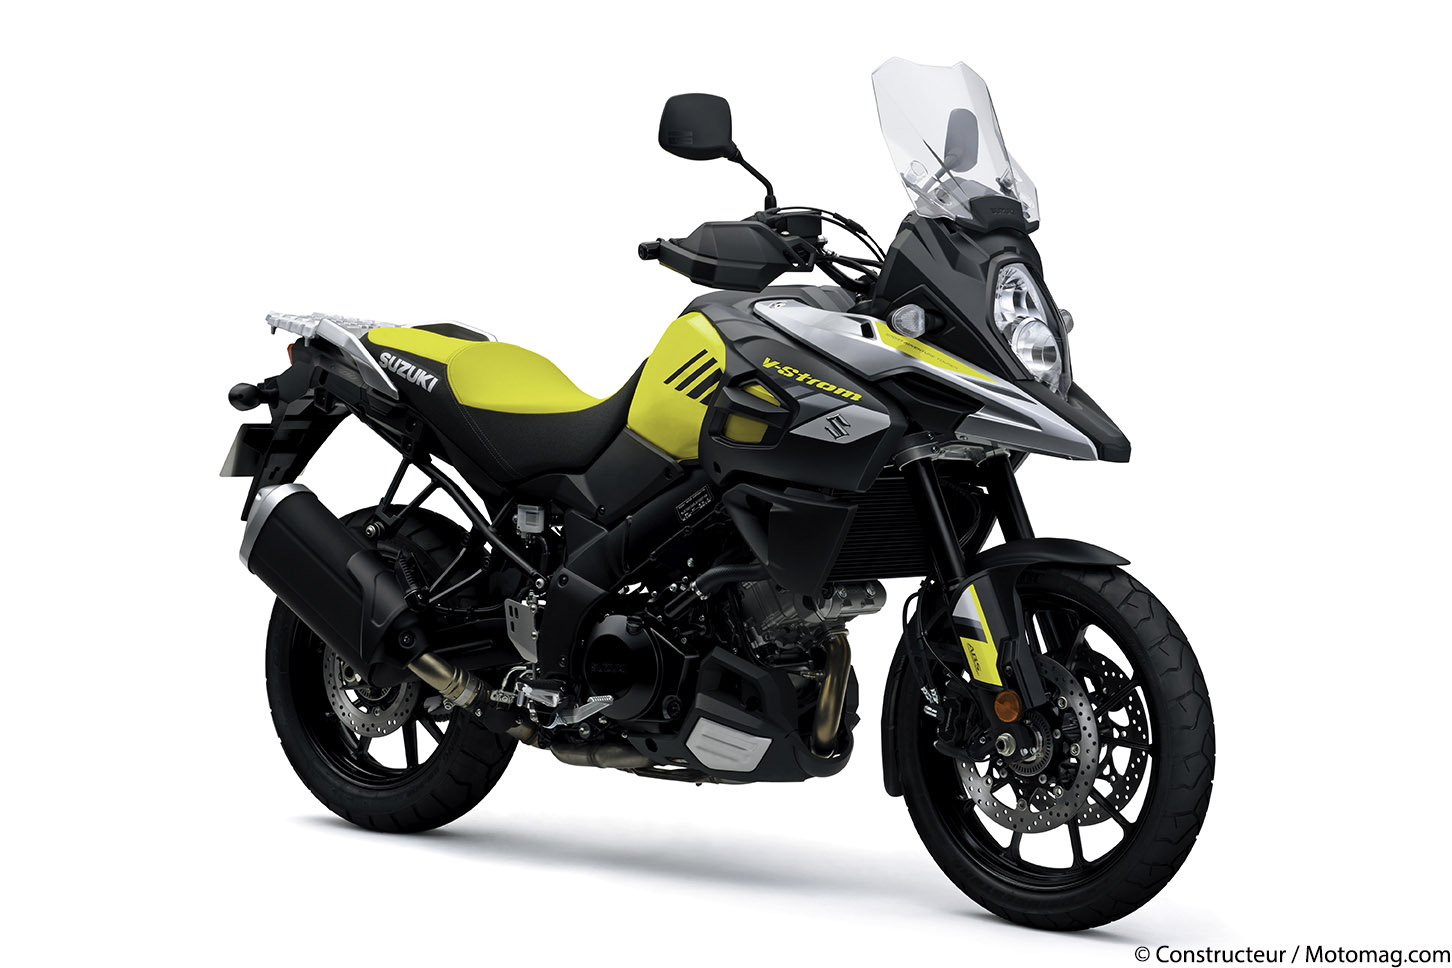 Suzuki V-Strom 1000 : des innovations en 2017